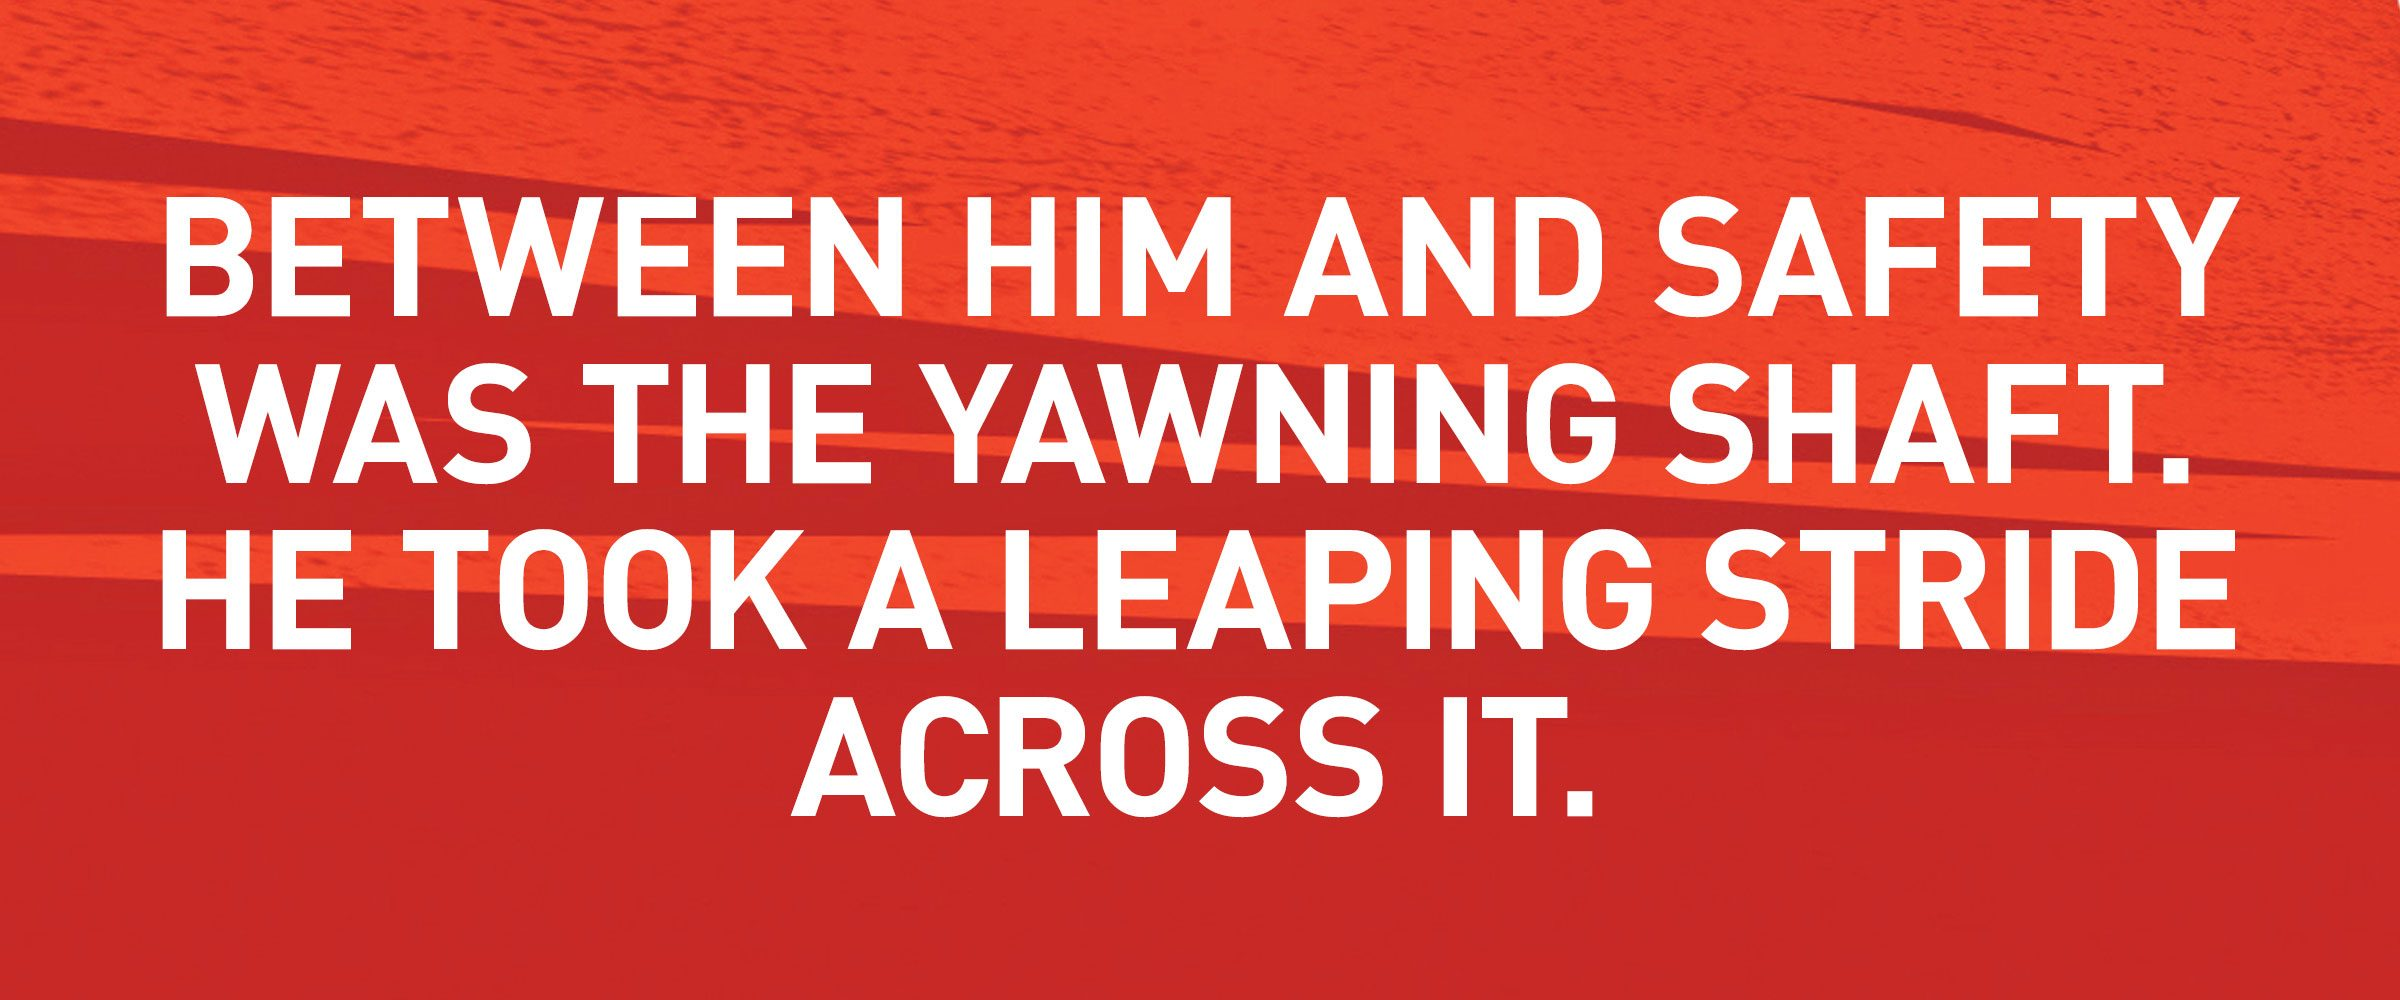 Text: BETWEEN HIM AND SAFETY WAS THE YAWNING SHAFT. HE TOOK A LEAPING STRIDE ACROSS IT.